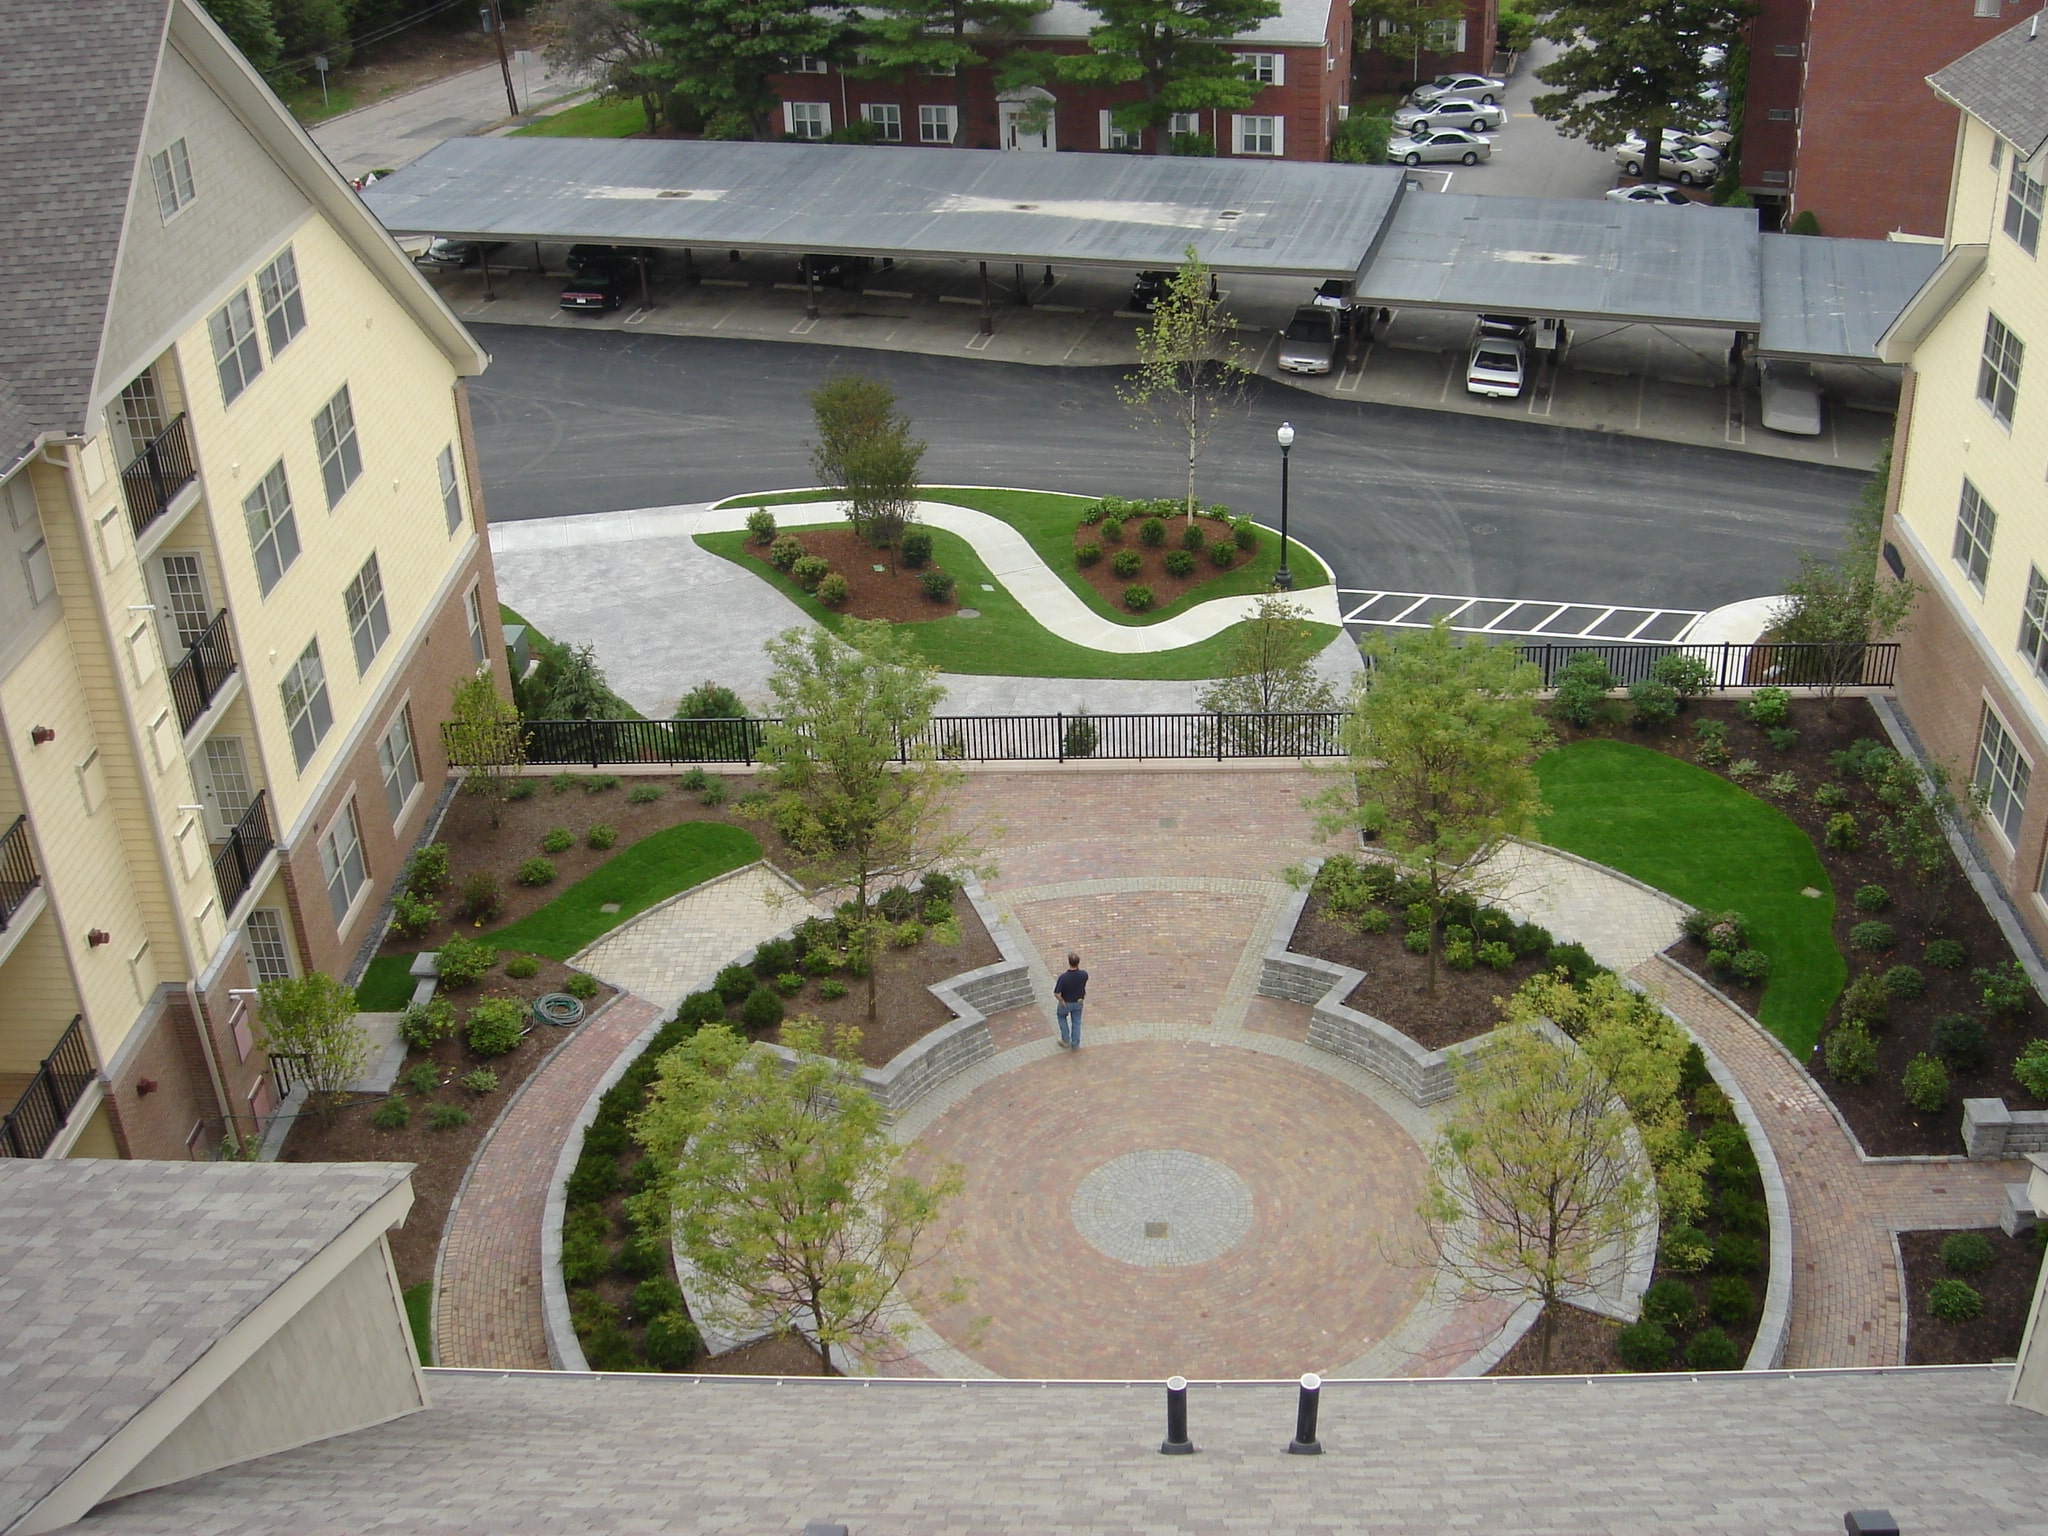 Aerial view of plaza with trees maintained by Greenscape.